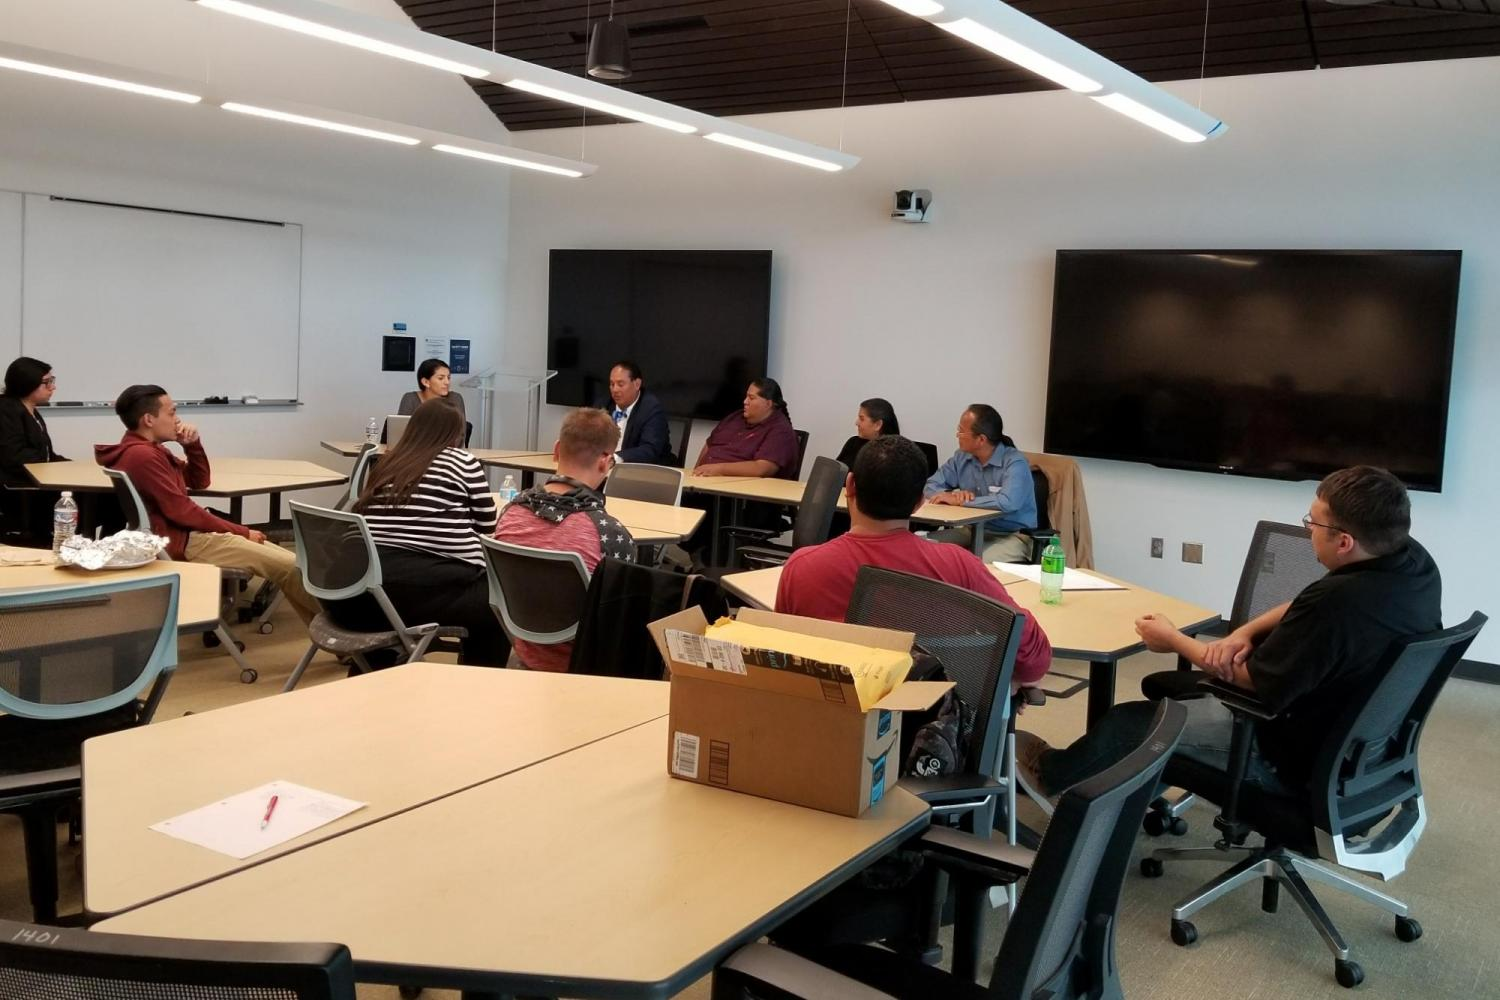 Career panel discussion